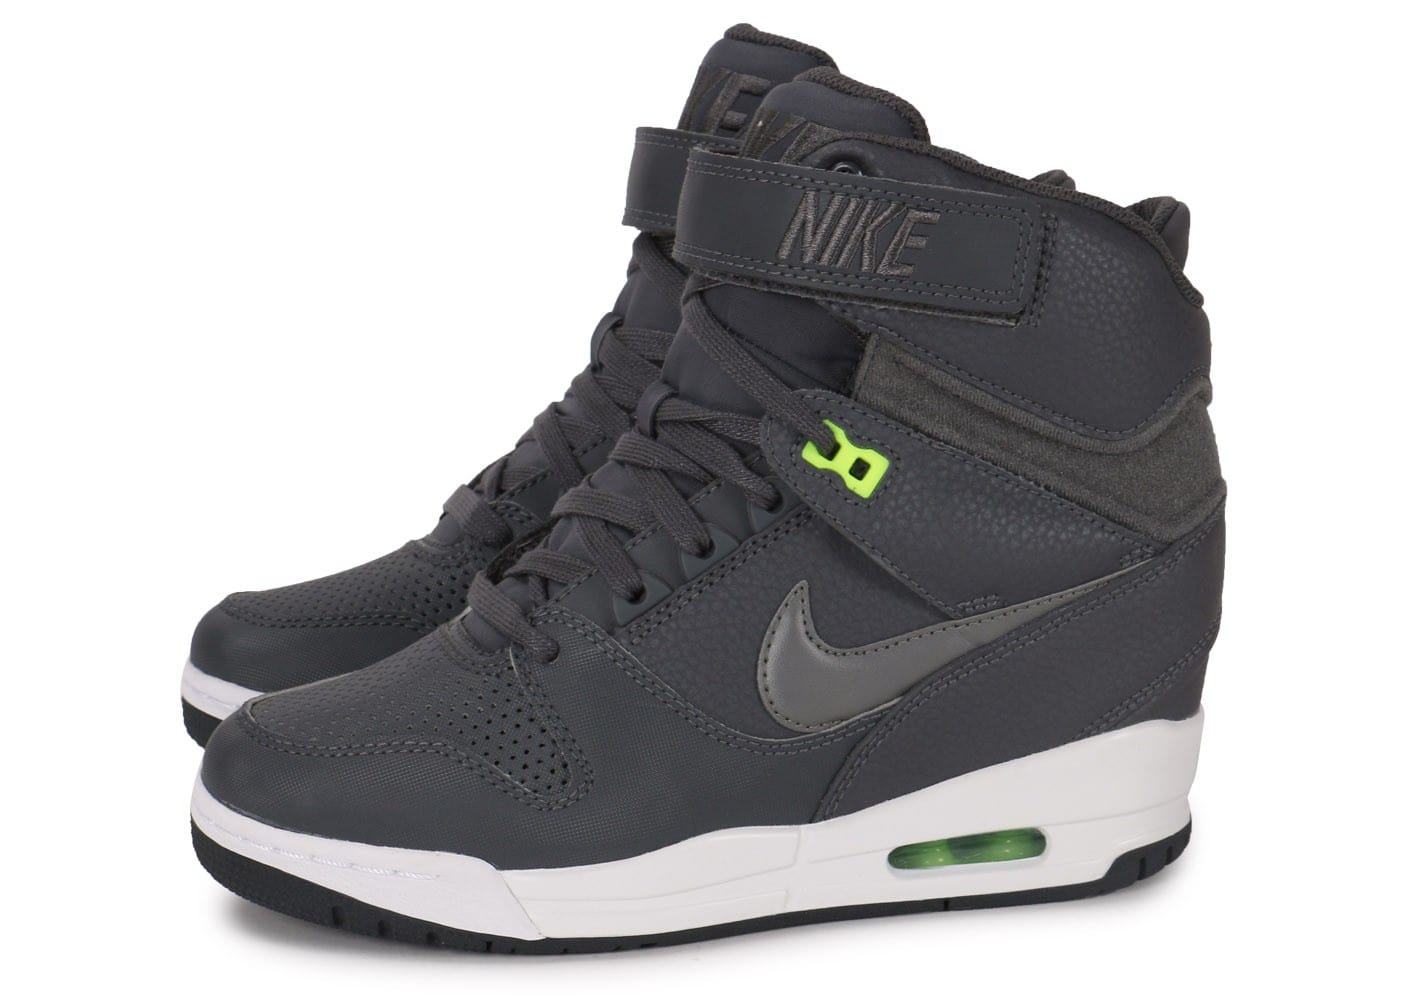 Nike Air Revolution Sky Hi grise - Chaussures Chaussures ...